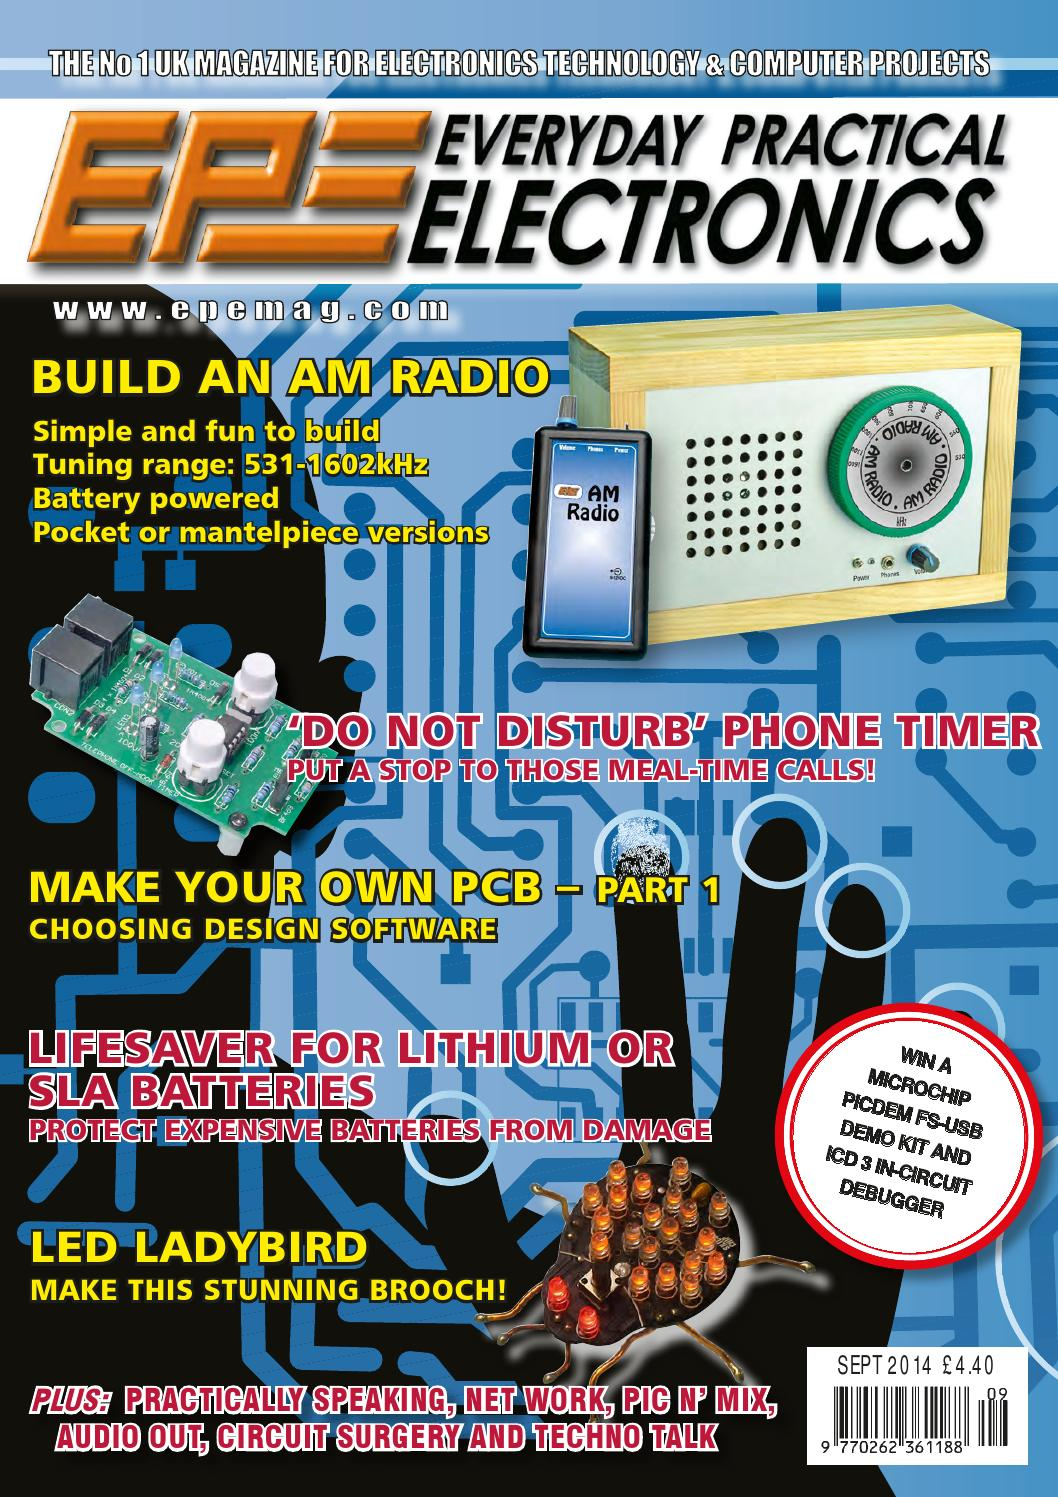 Everyday Practical Electronics 2014 09 By Yurgen Issuu Oem Circuit Board Pcb Make Your Own Buy